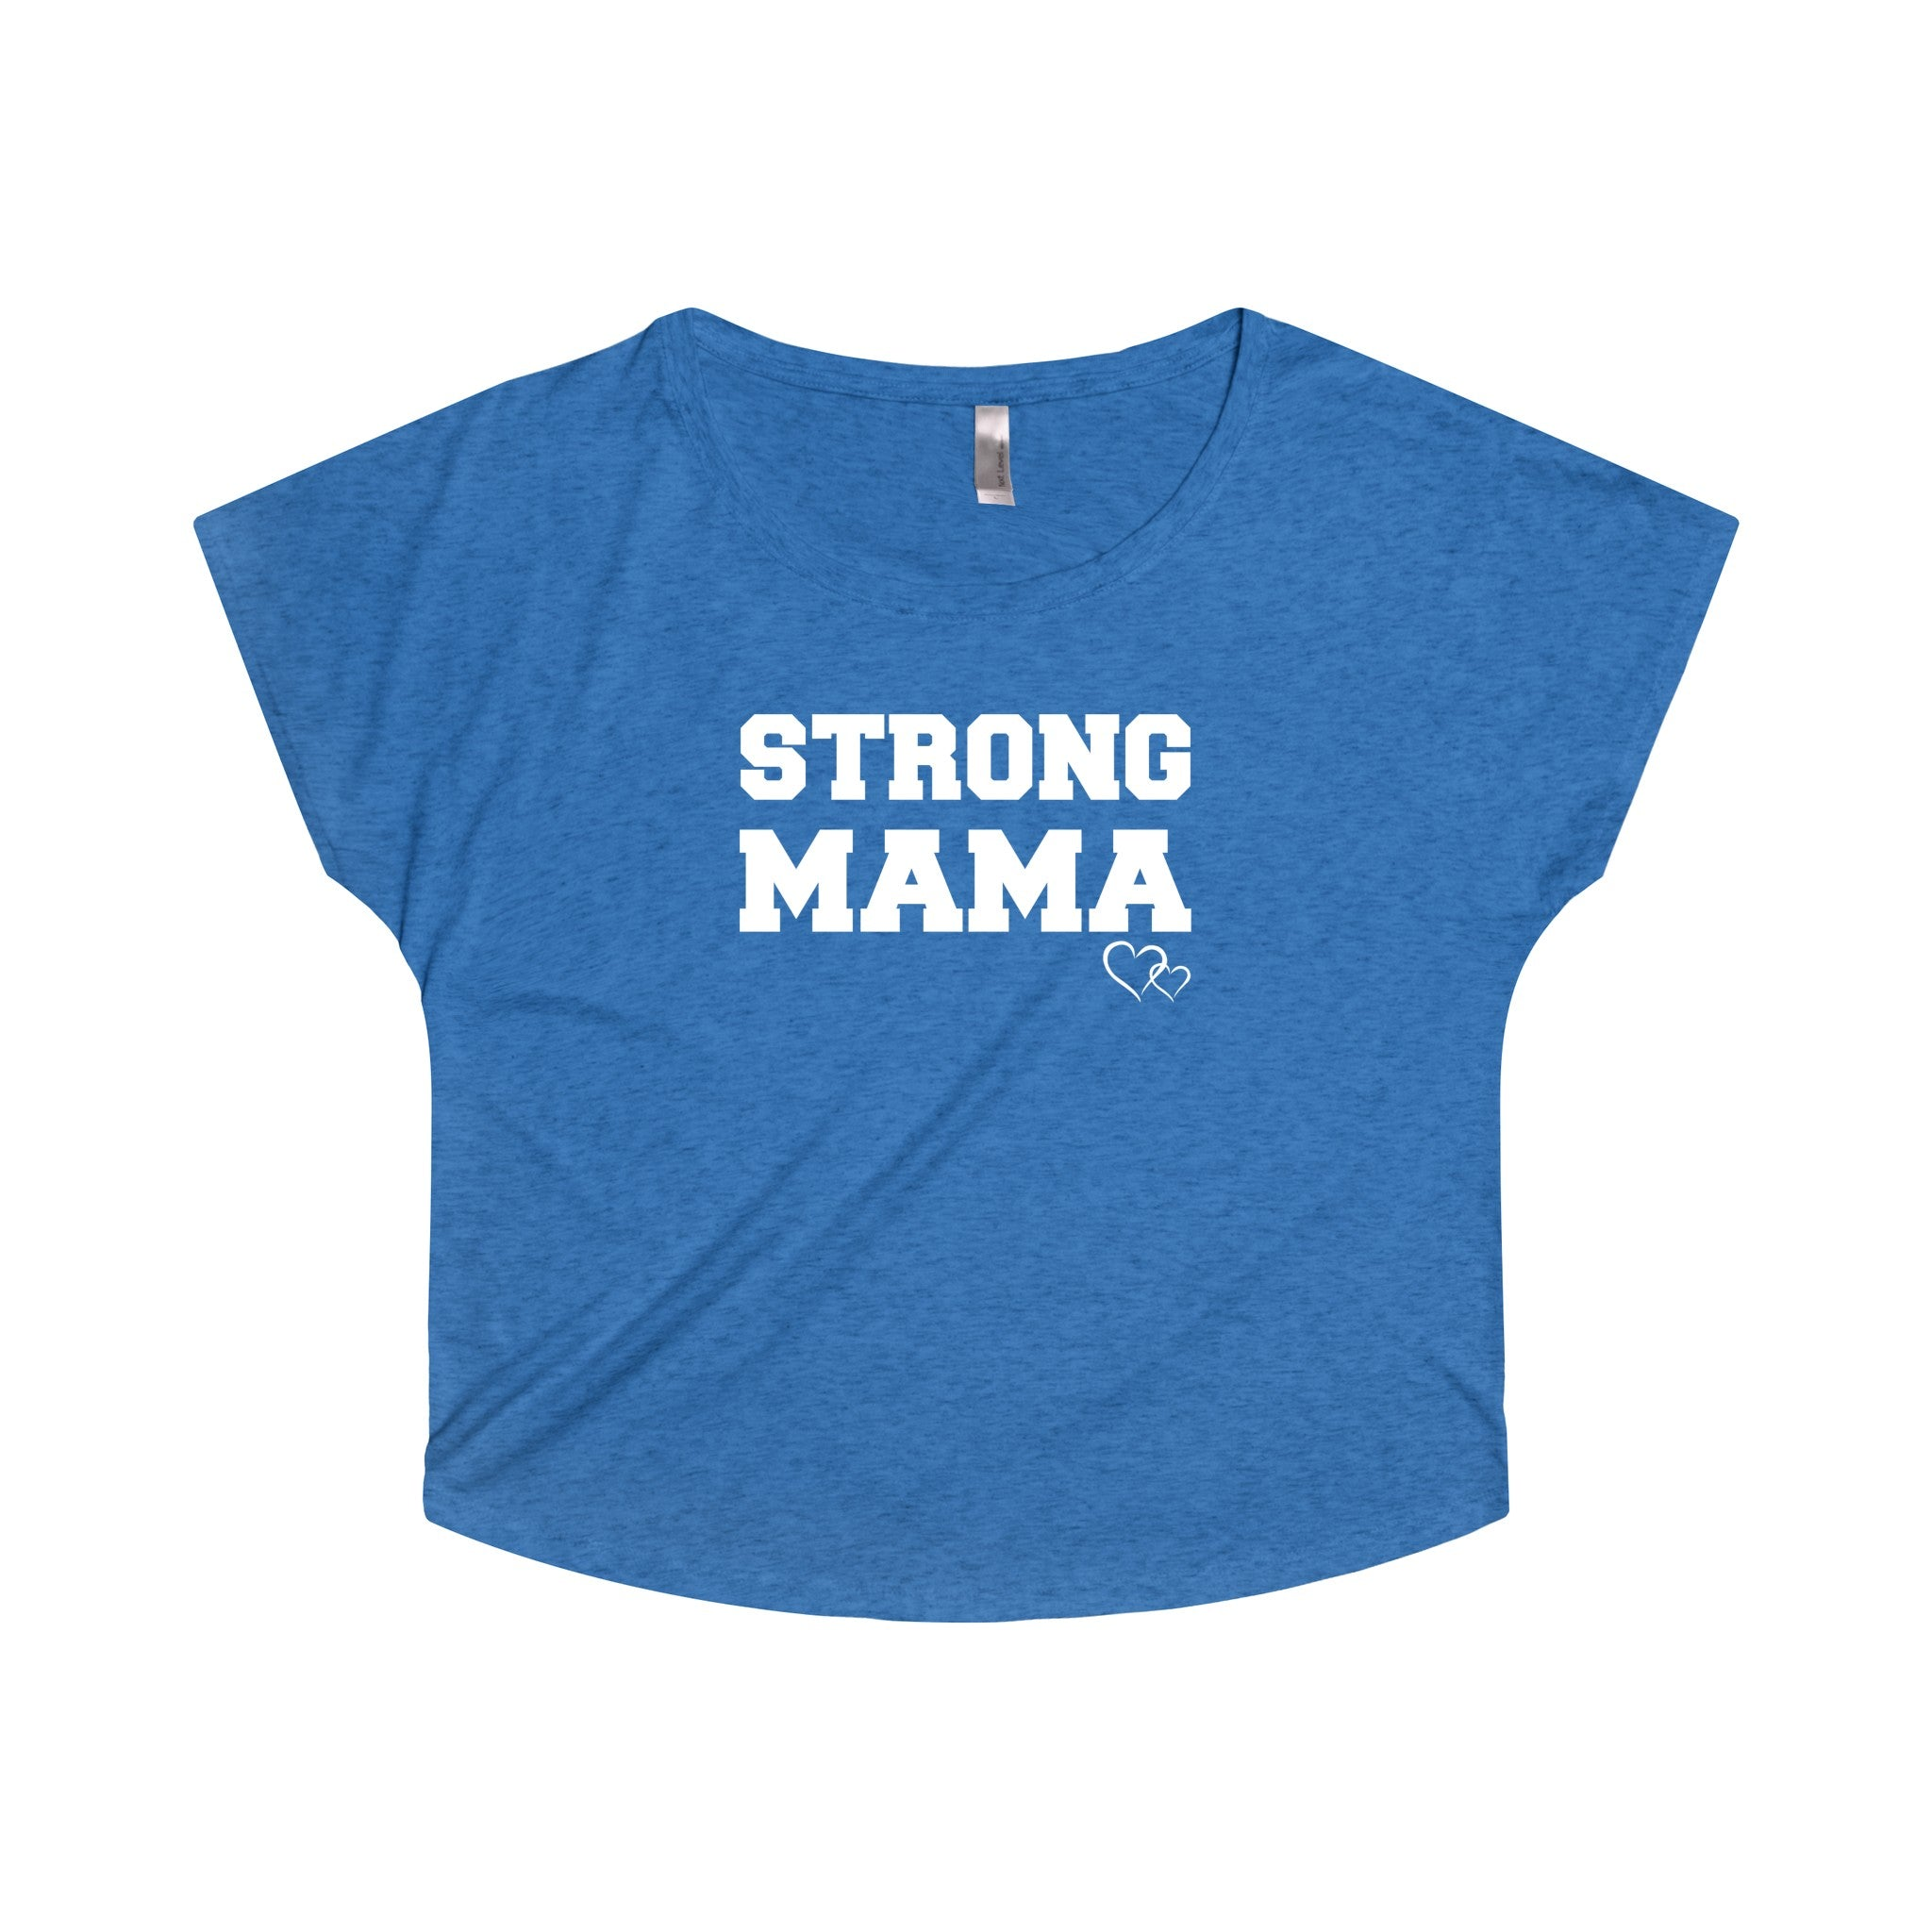 STRONG MAMA - Loose Dolman Sleeve